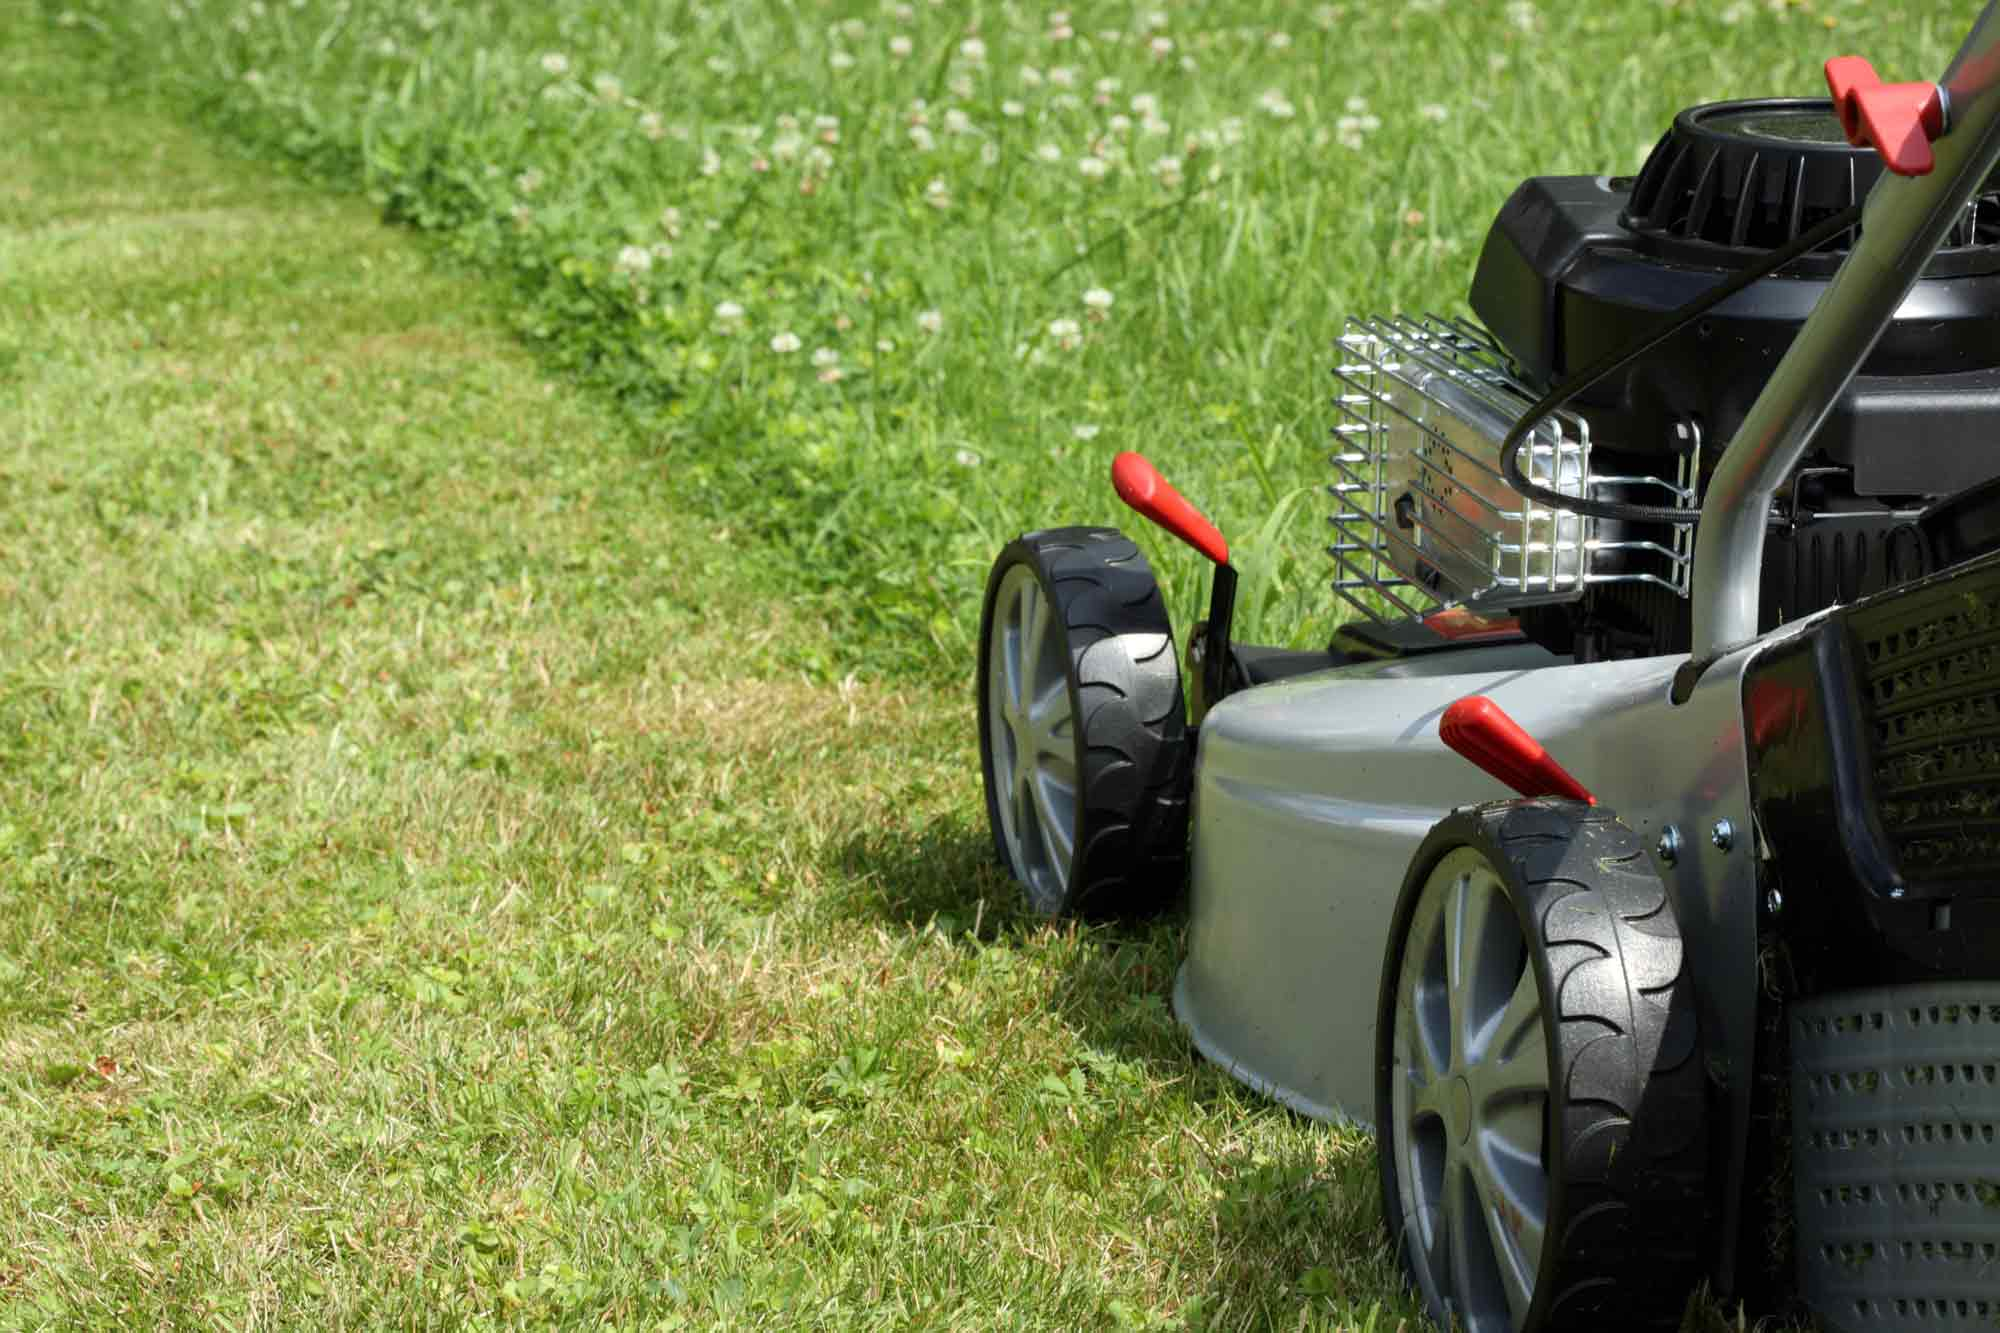 applecross lawn mowing applecross lawn mowing